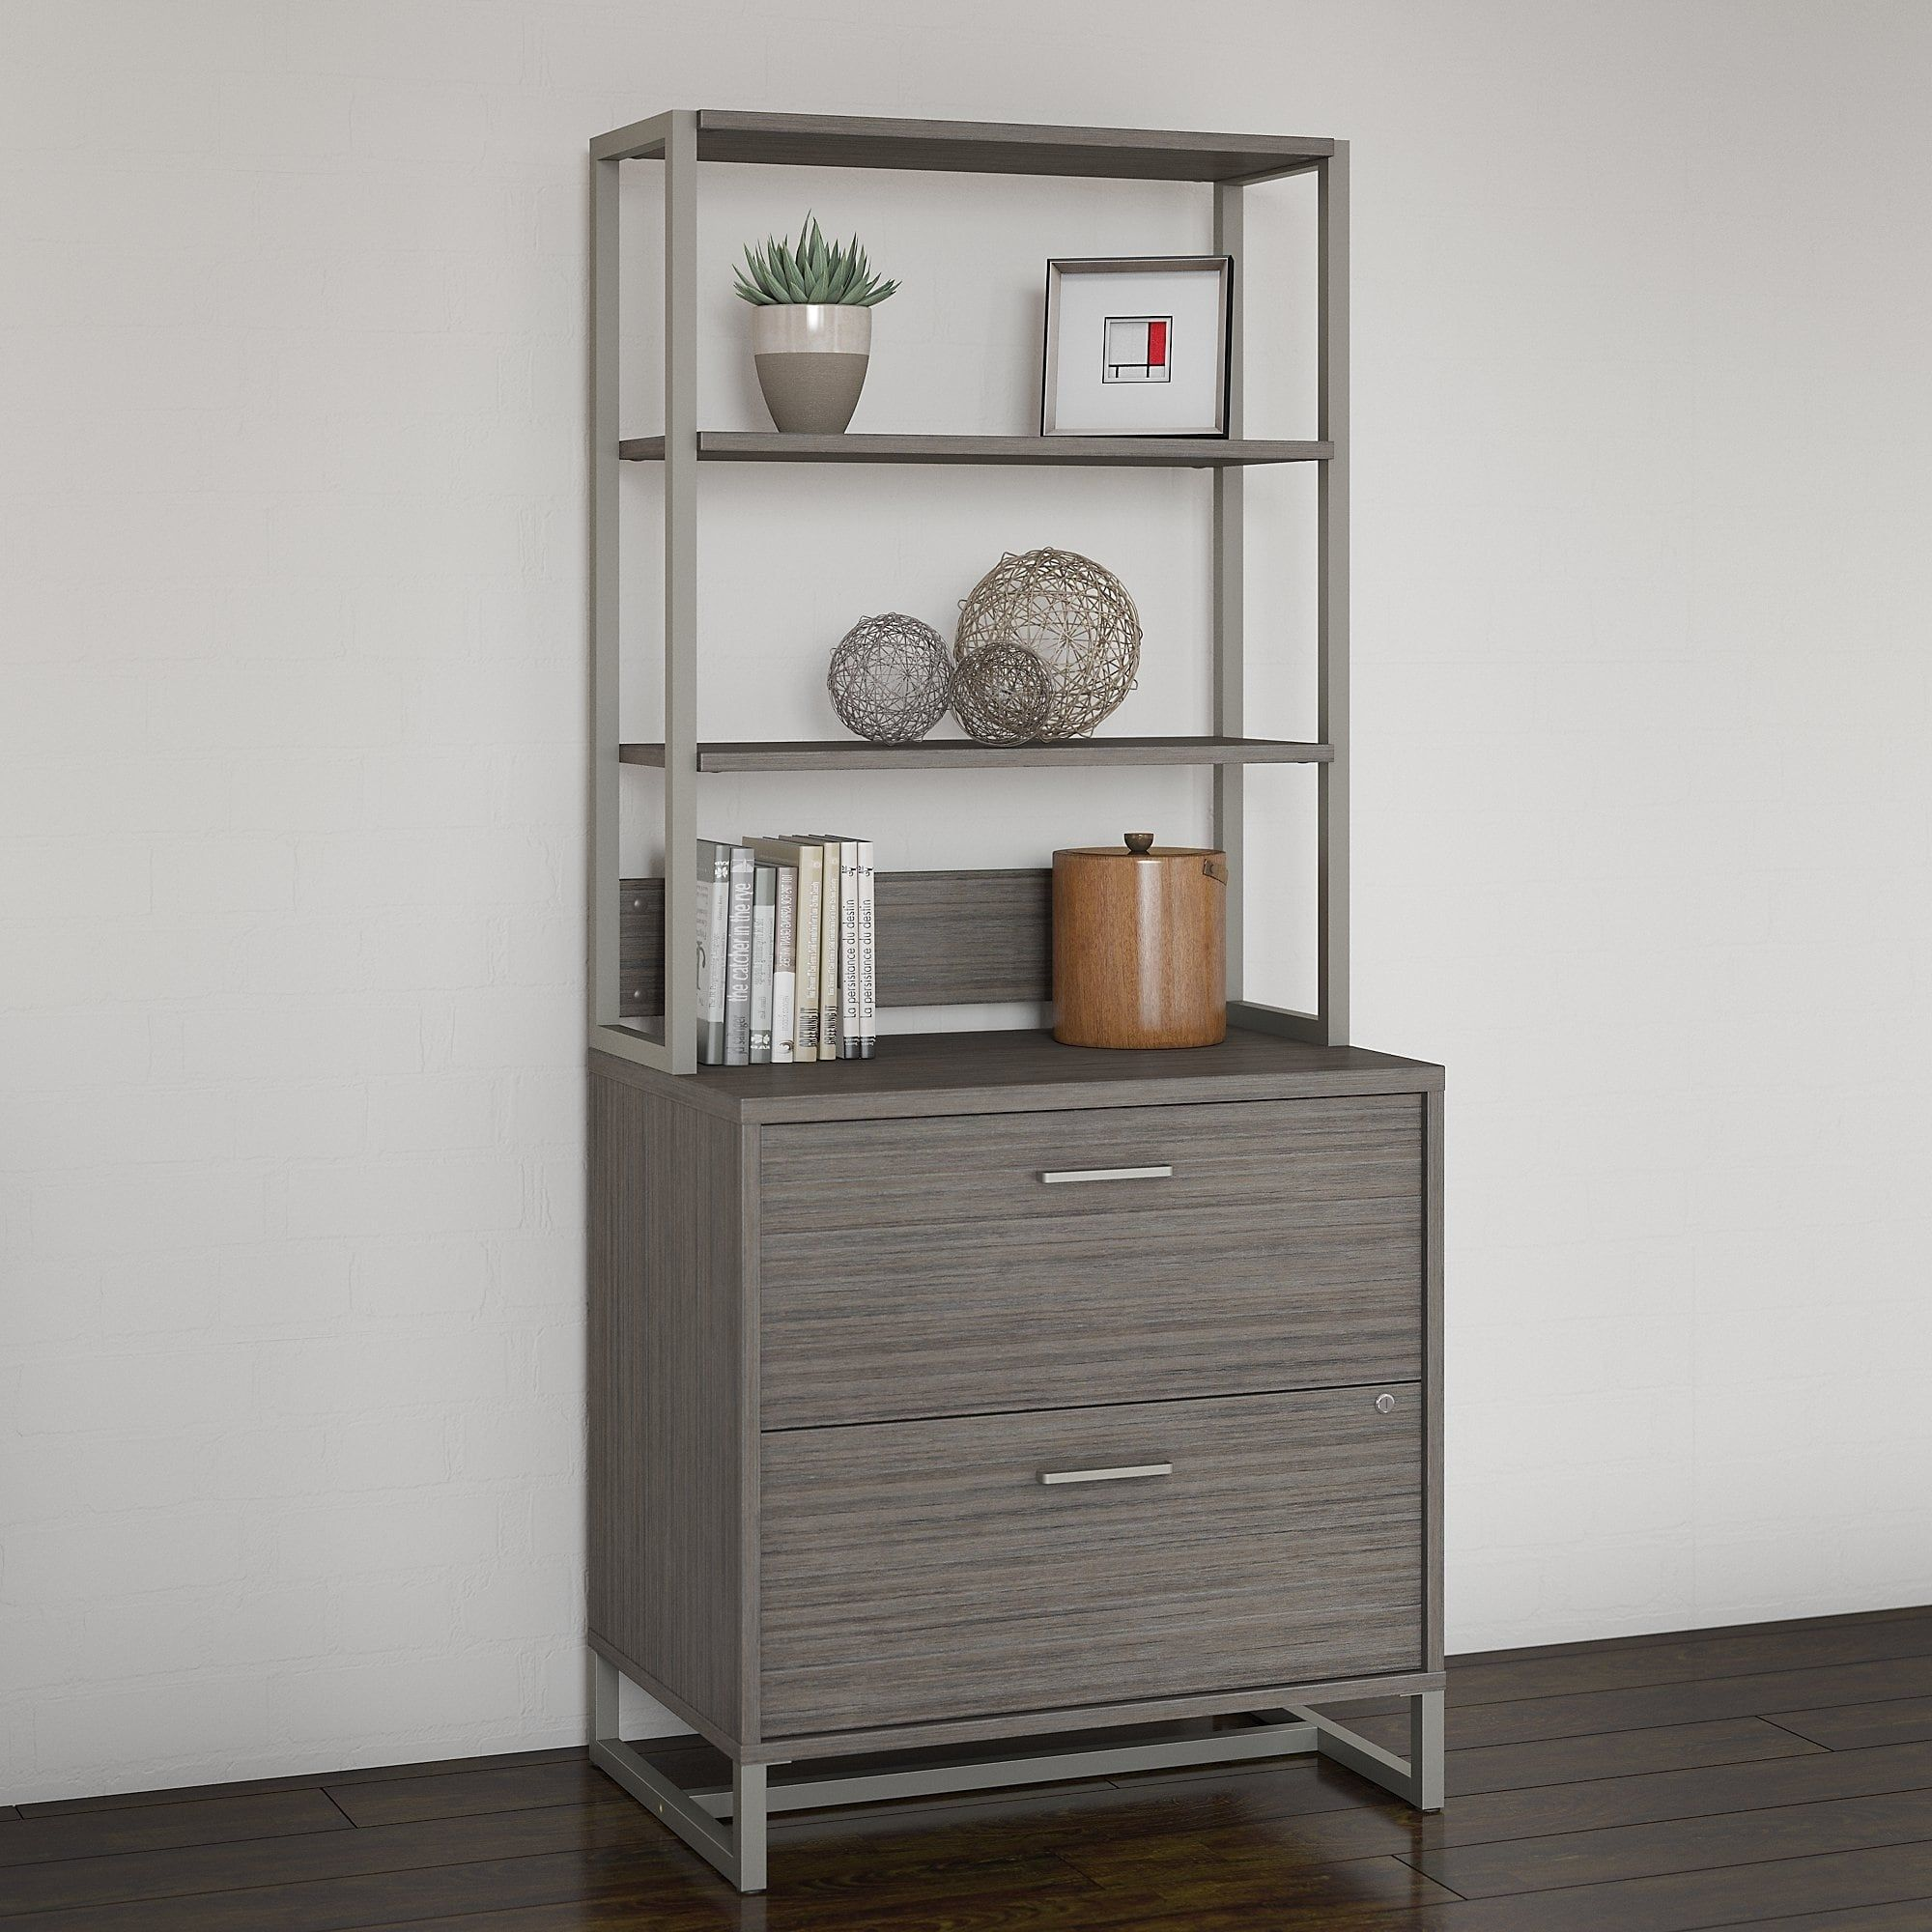 Bush Industries Kathy Ireland Office Method Metal Framed Lateral File  Cabinet With Hutch, Brown